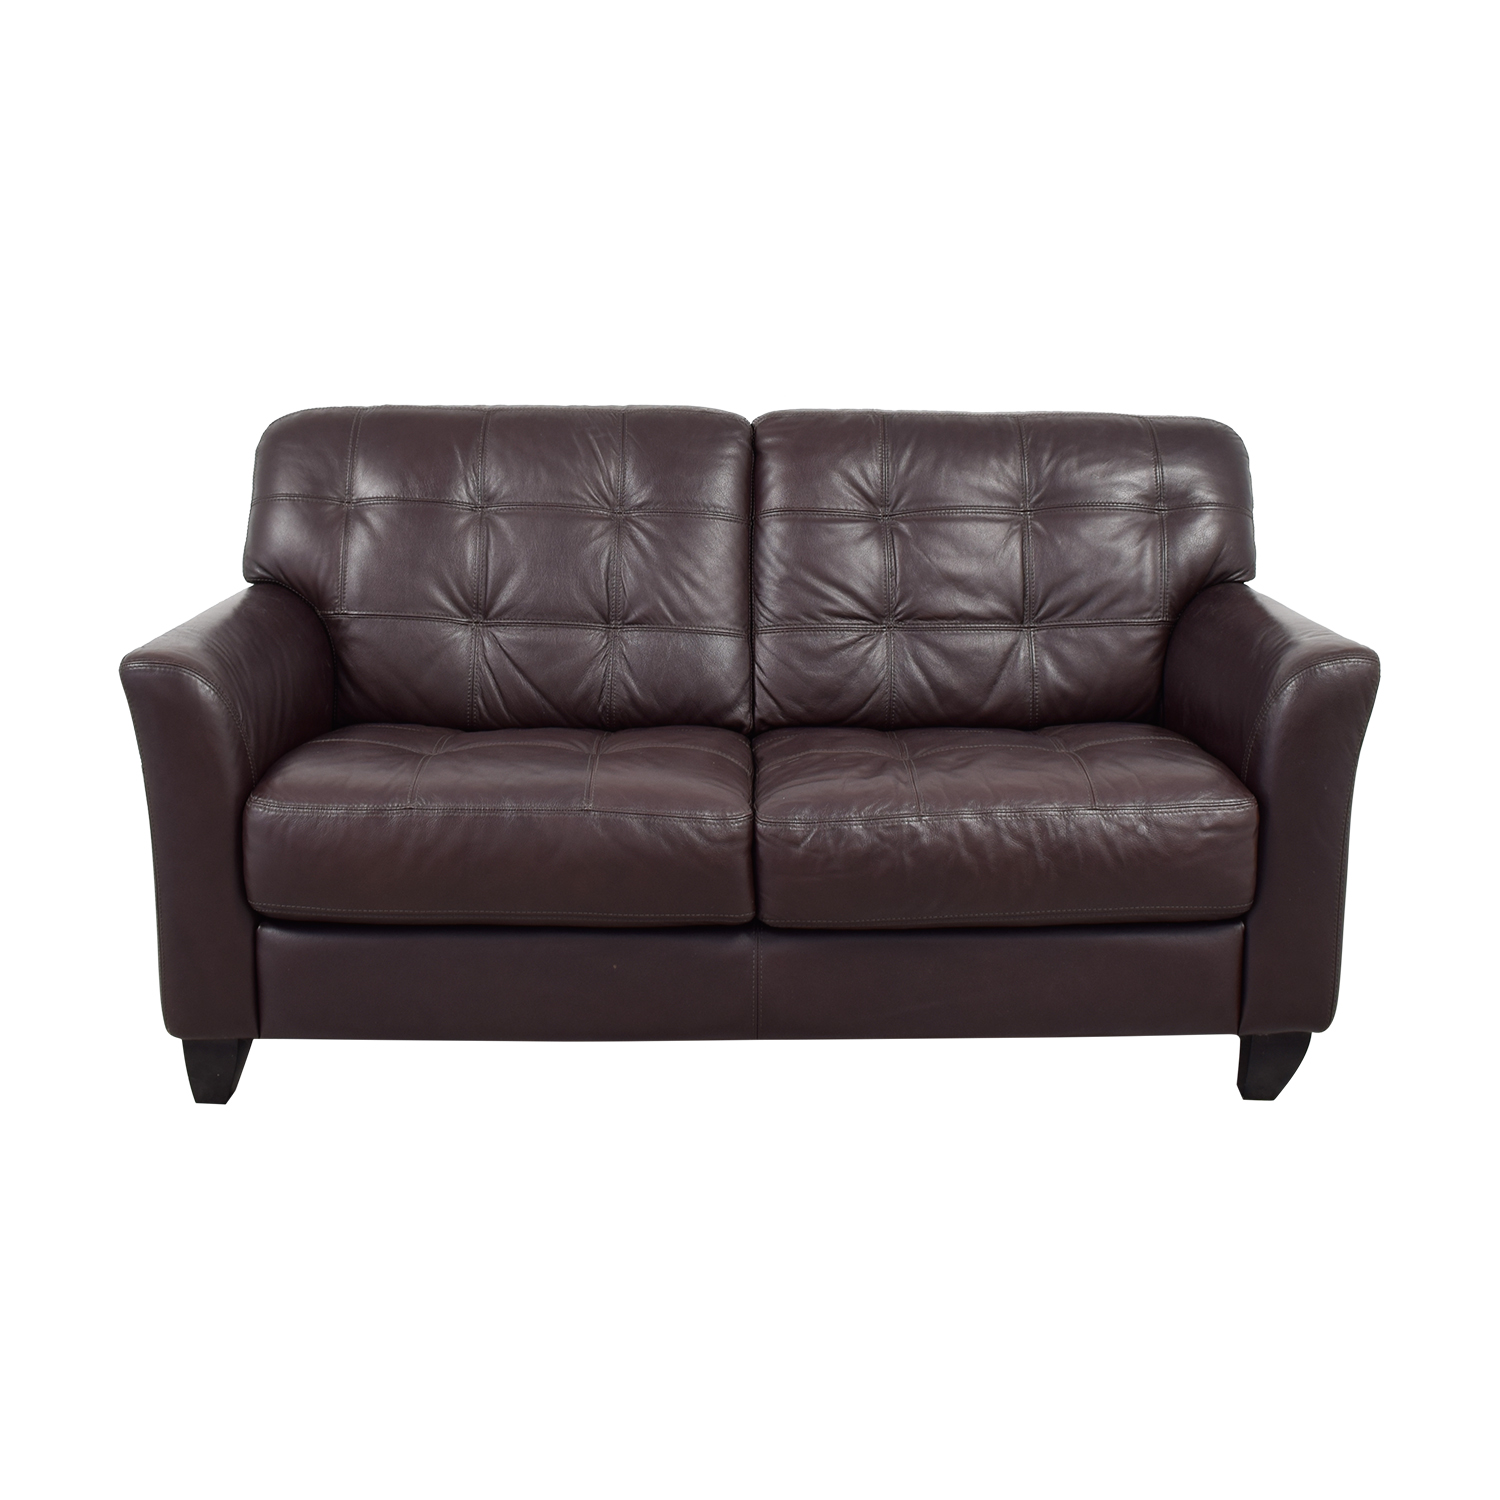 furniture fenmore loveseats recliner black sale natuzzi loveseat on fine uk ideas toronto faux rare shop coaster leather at costco canada